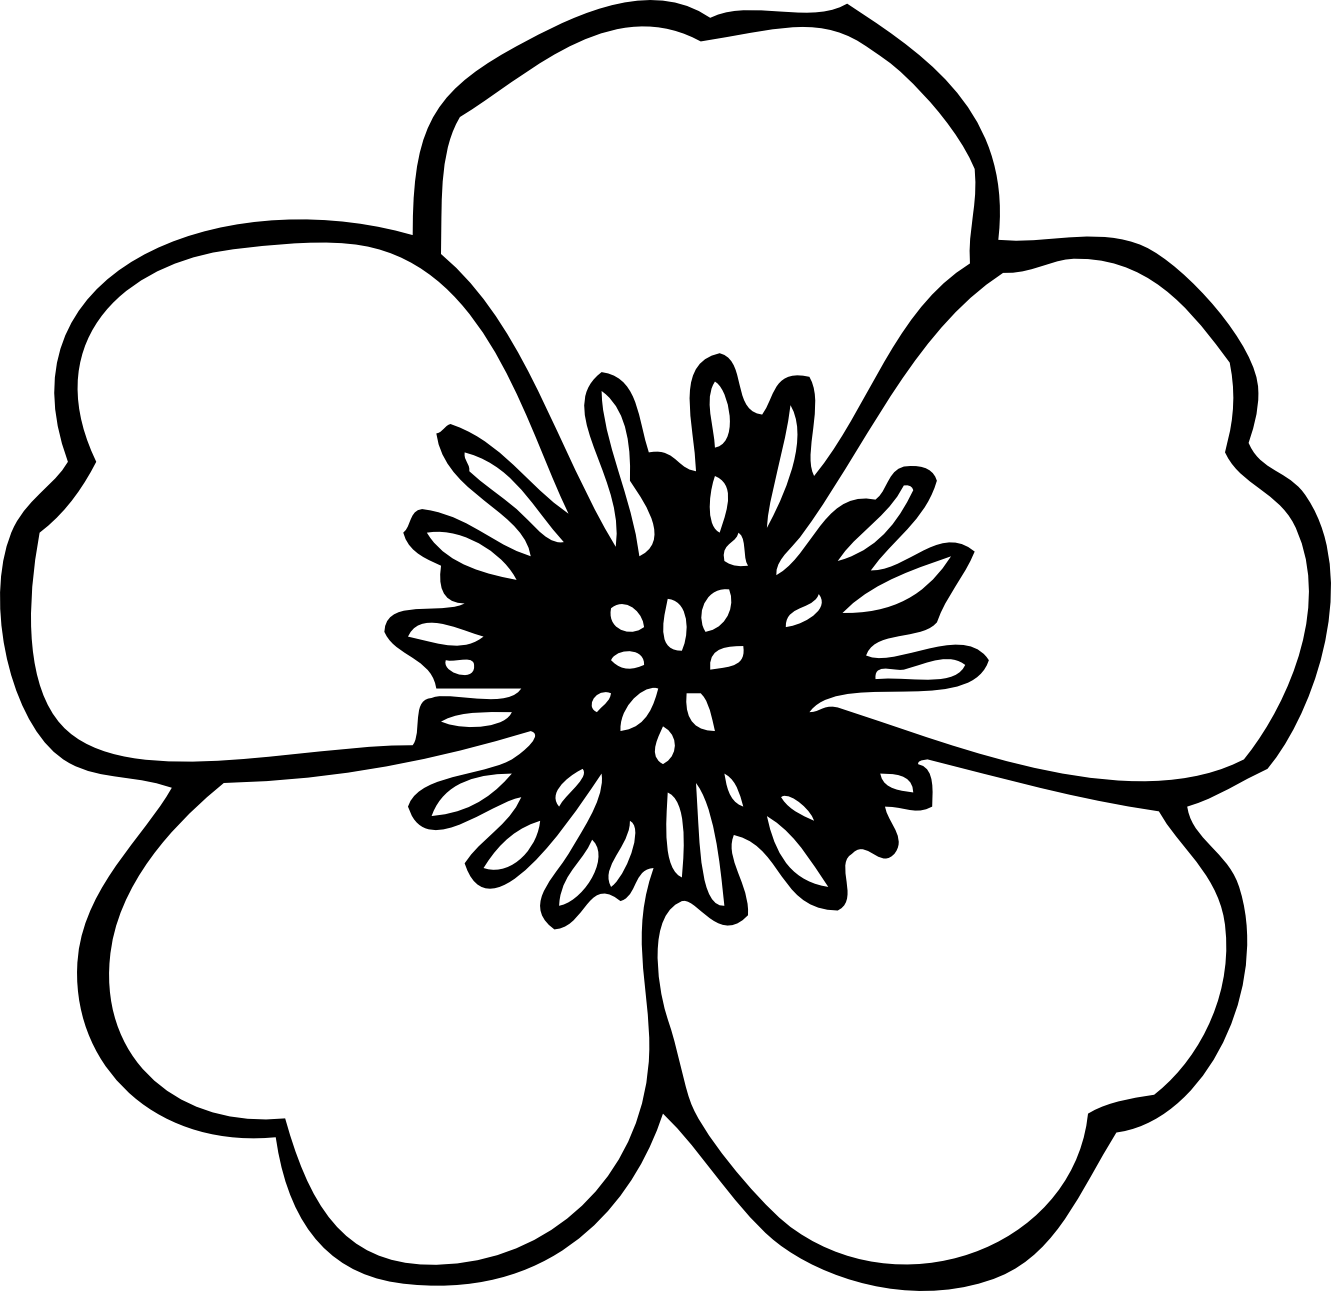 Simple flower png. Clipart black and white